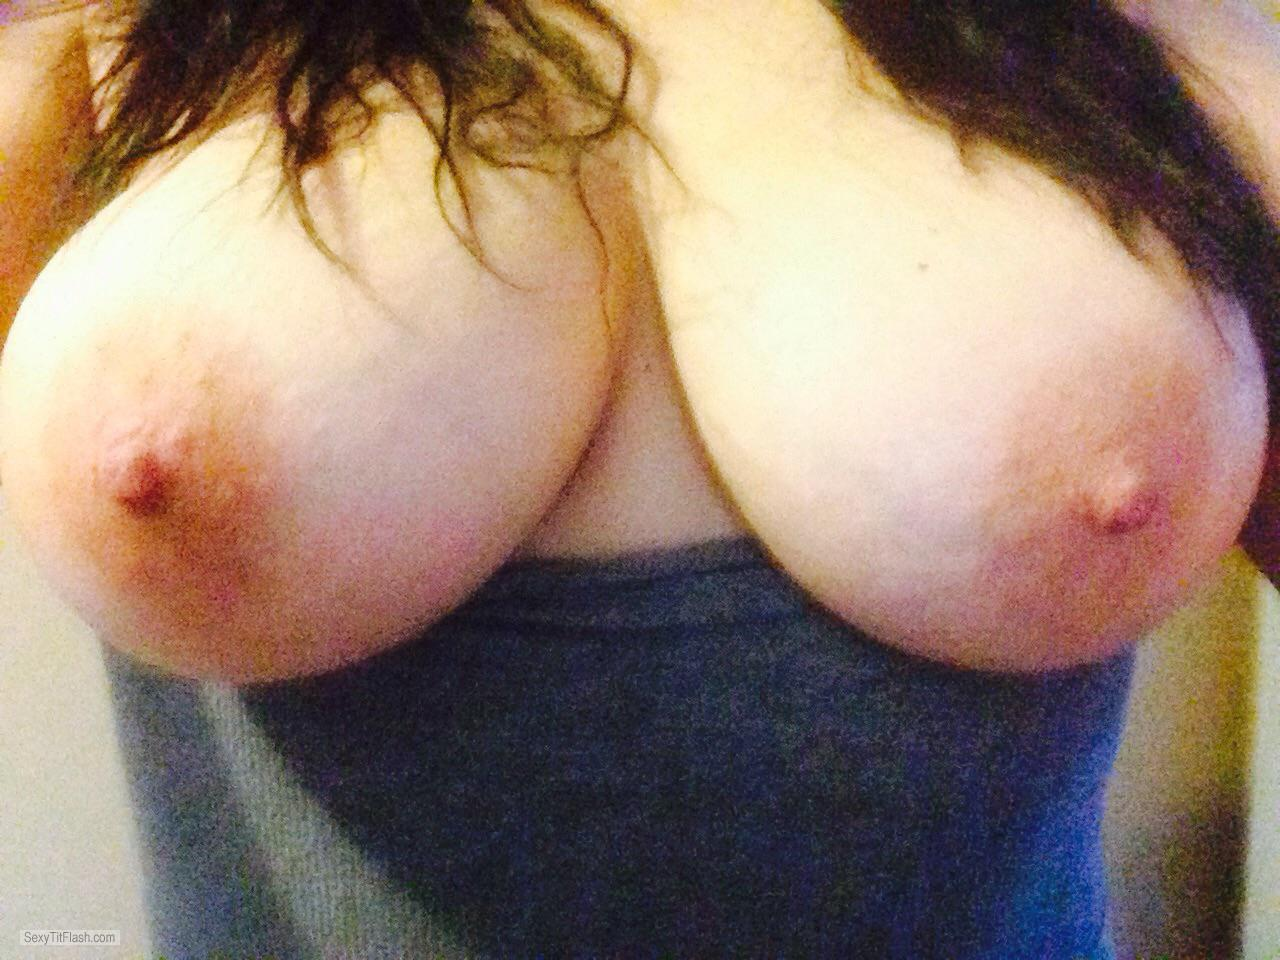 Big Tits Of My Wife Selfie by Shan